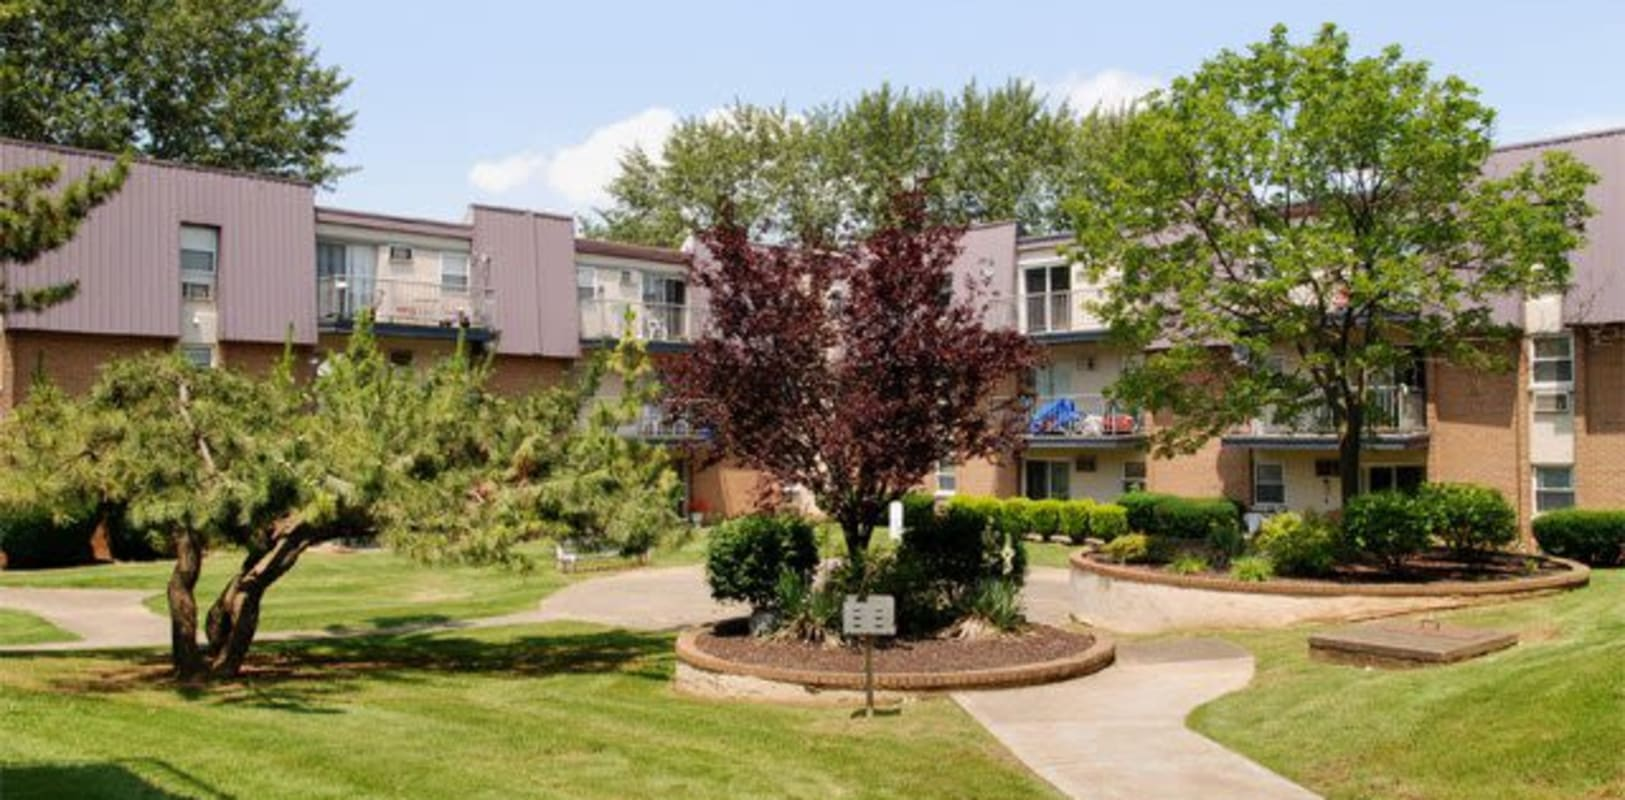 Lehigh Valley apartment courtyard in Whitehall, {location_state_name}}